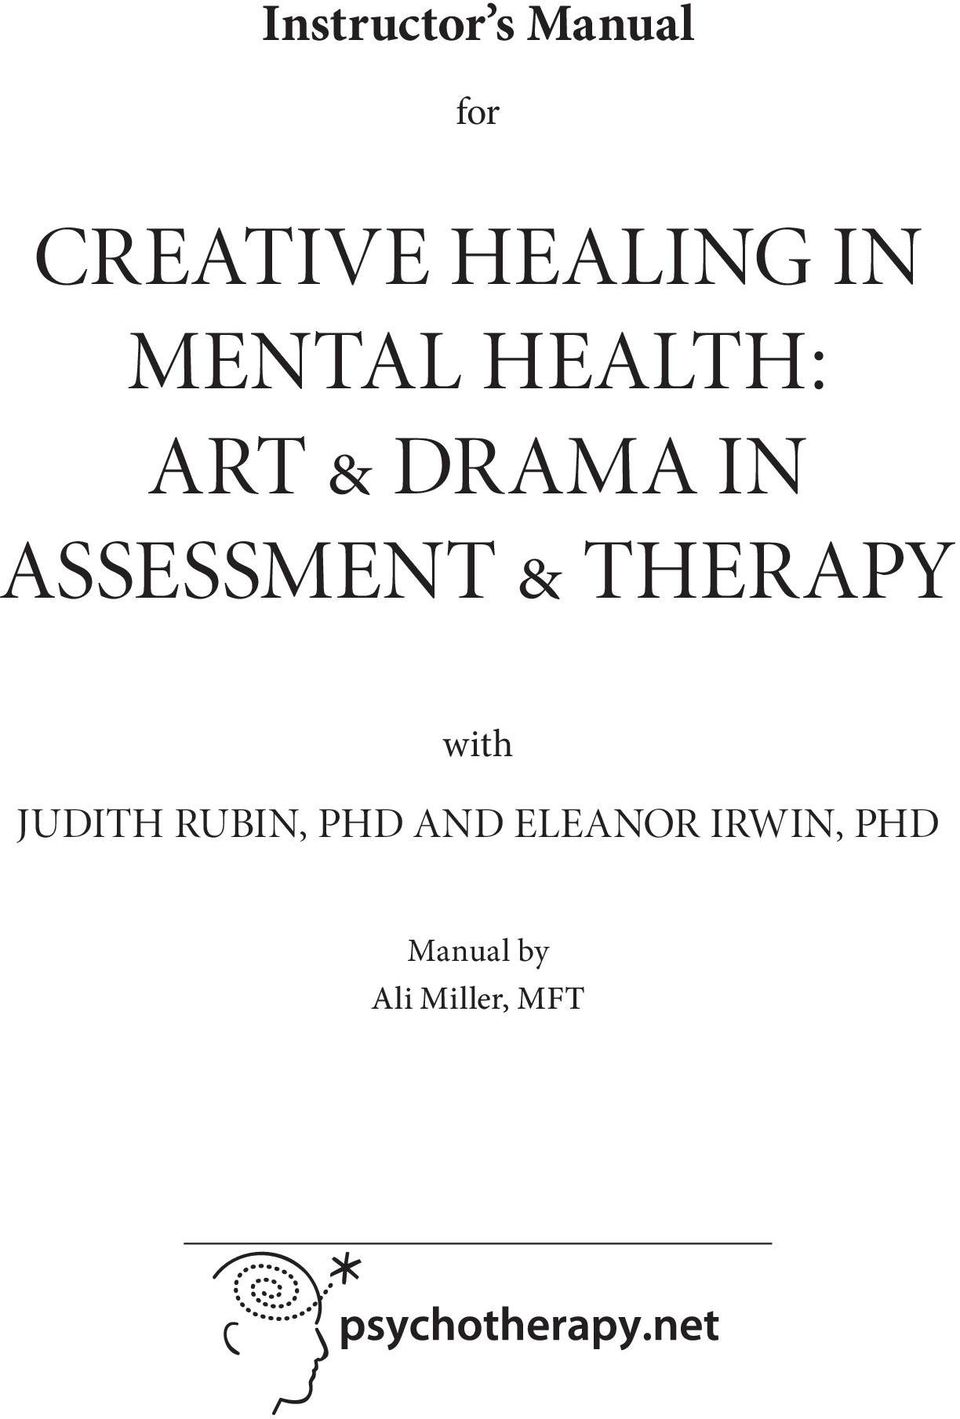 ASSESSMENT & THERAPY with Judith Rubin,